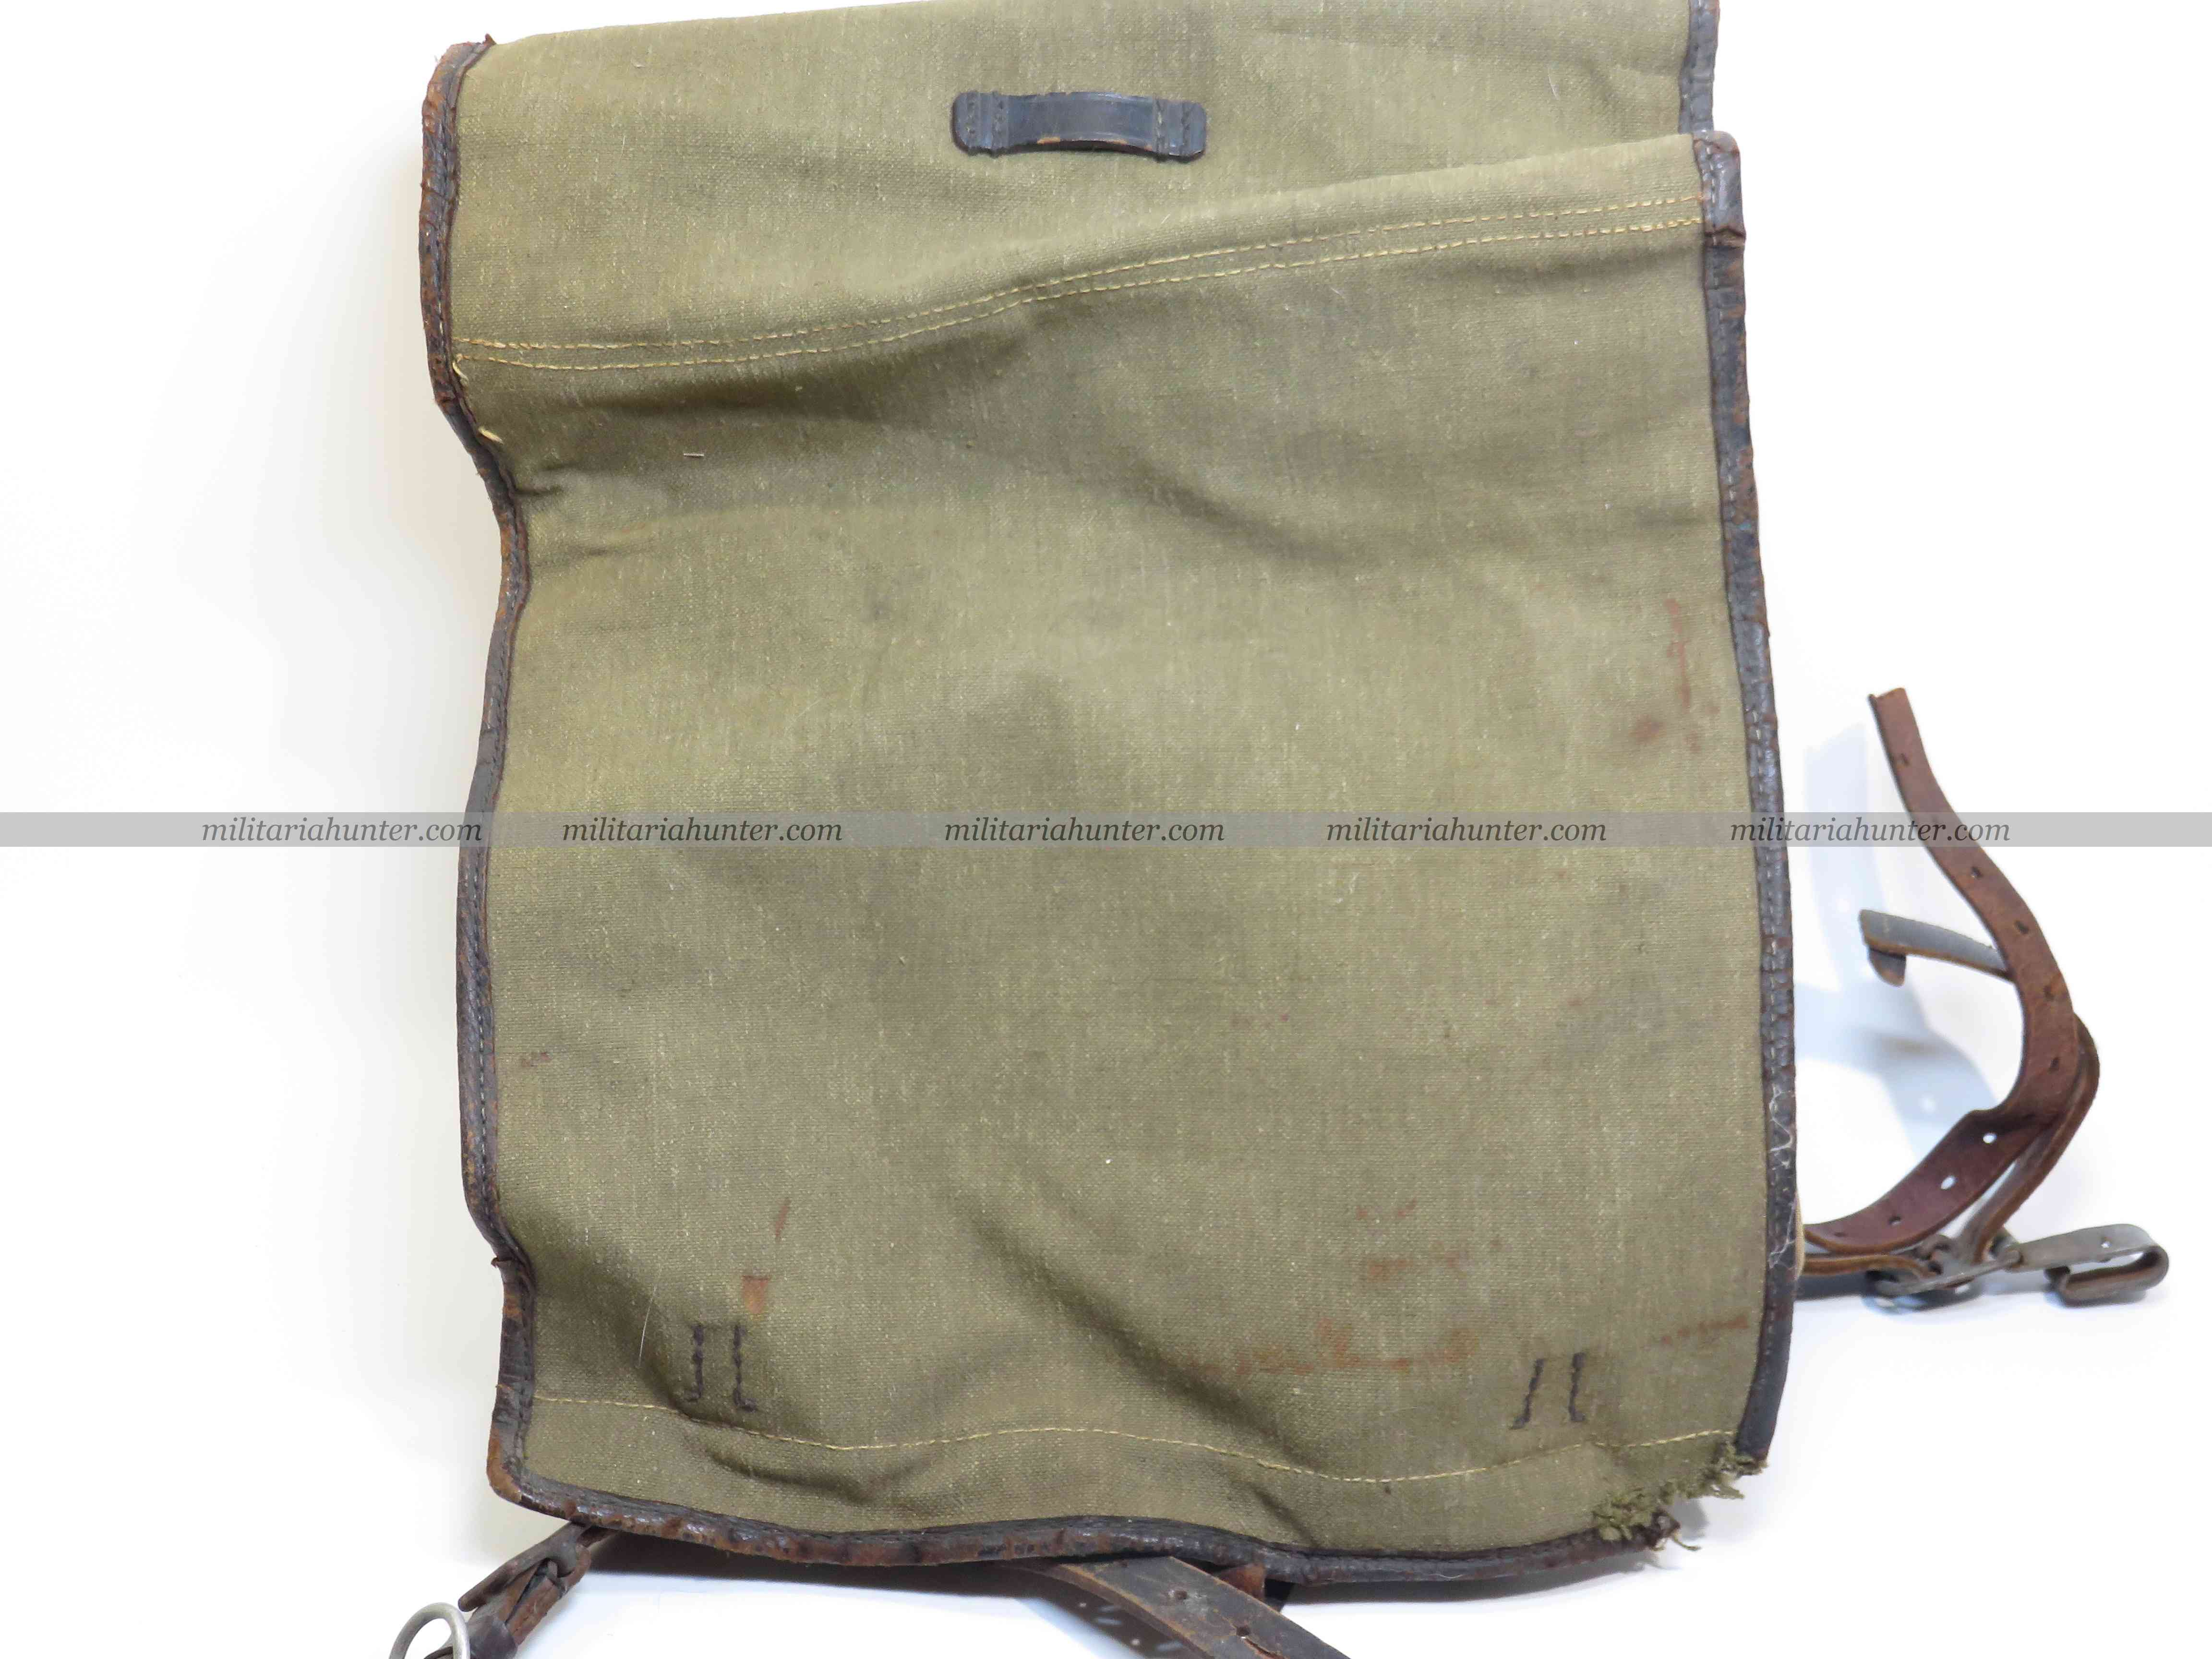 militaria : ww2 german backpack - Tornister allemand